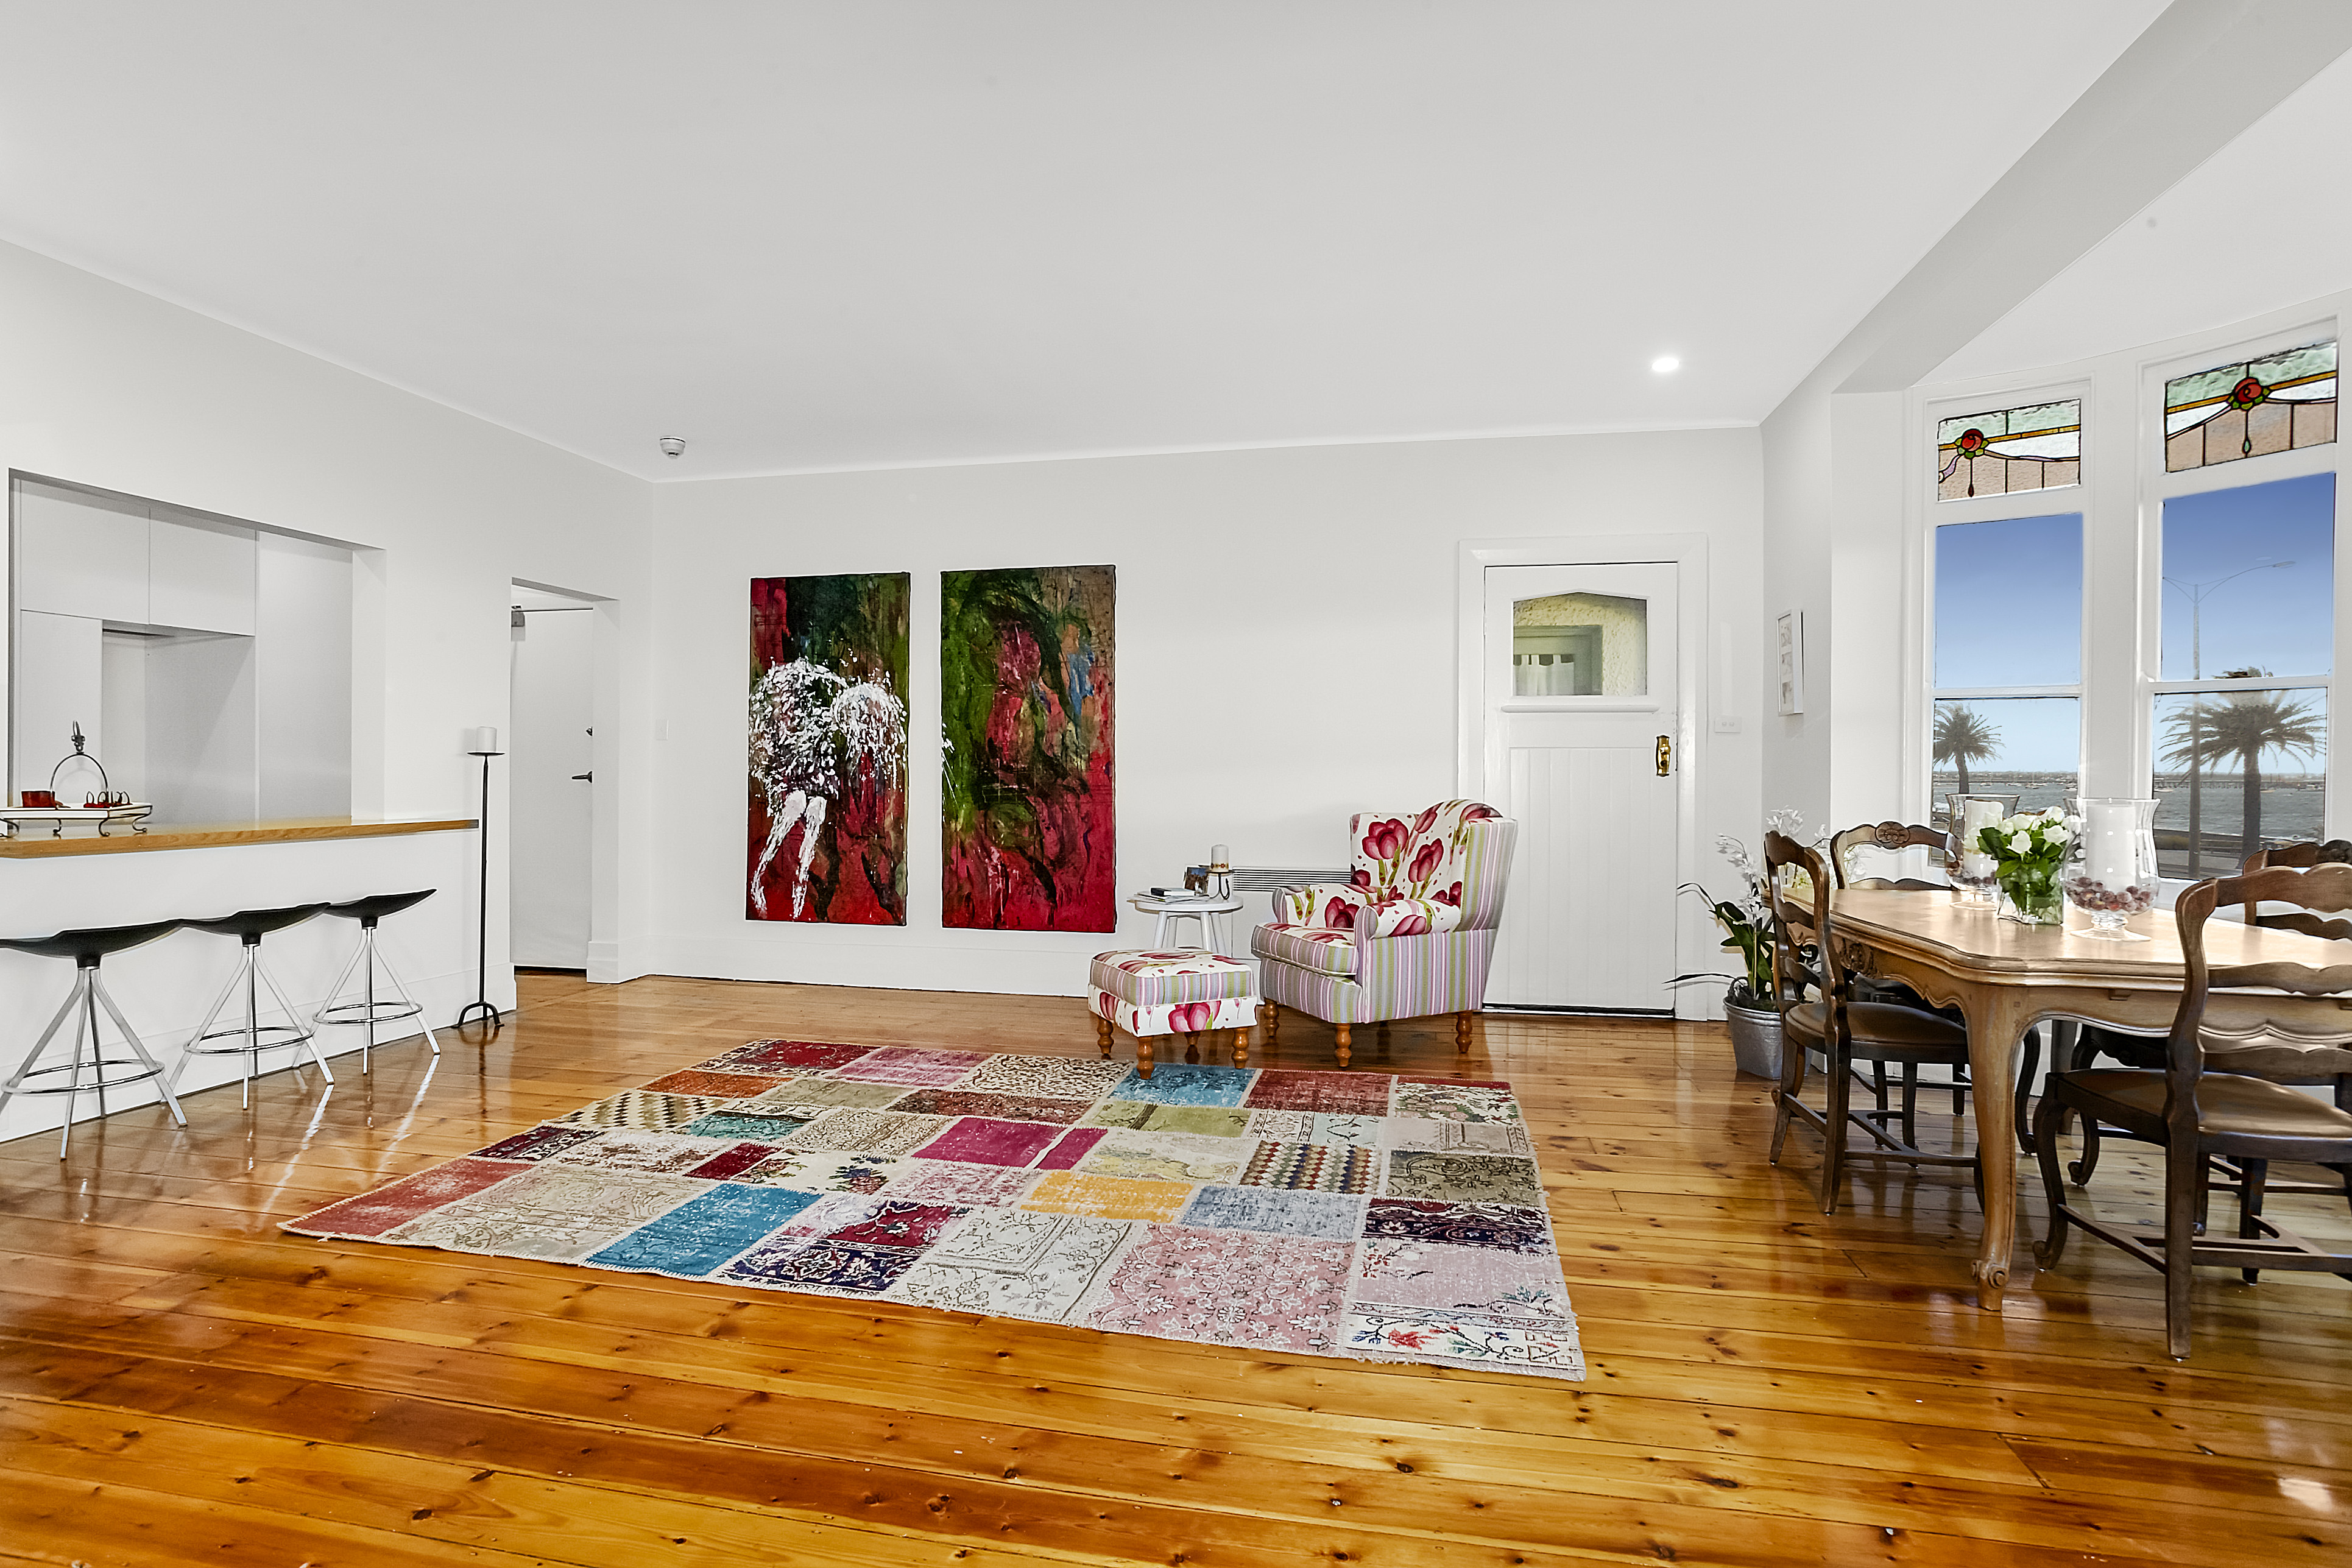 11-243-beaconsfield-parade-middle-park-student-accommodation-Melbourne-Dining-Area-Unilodgers